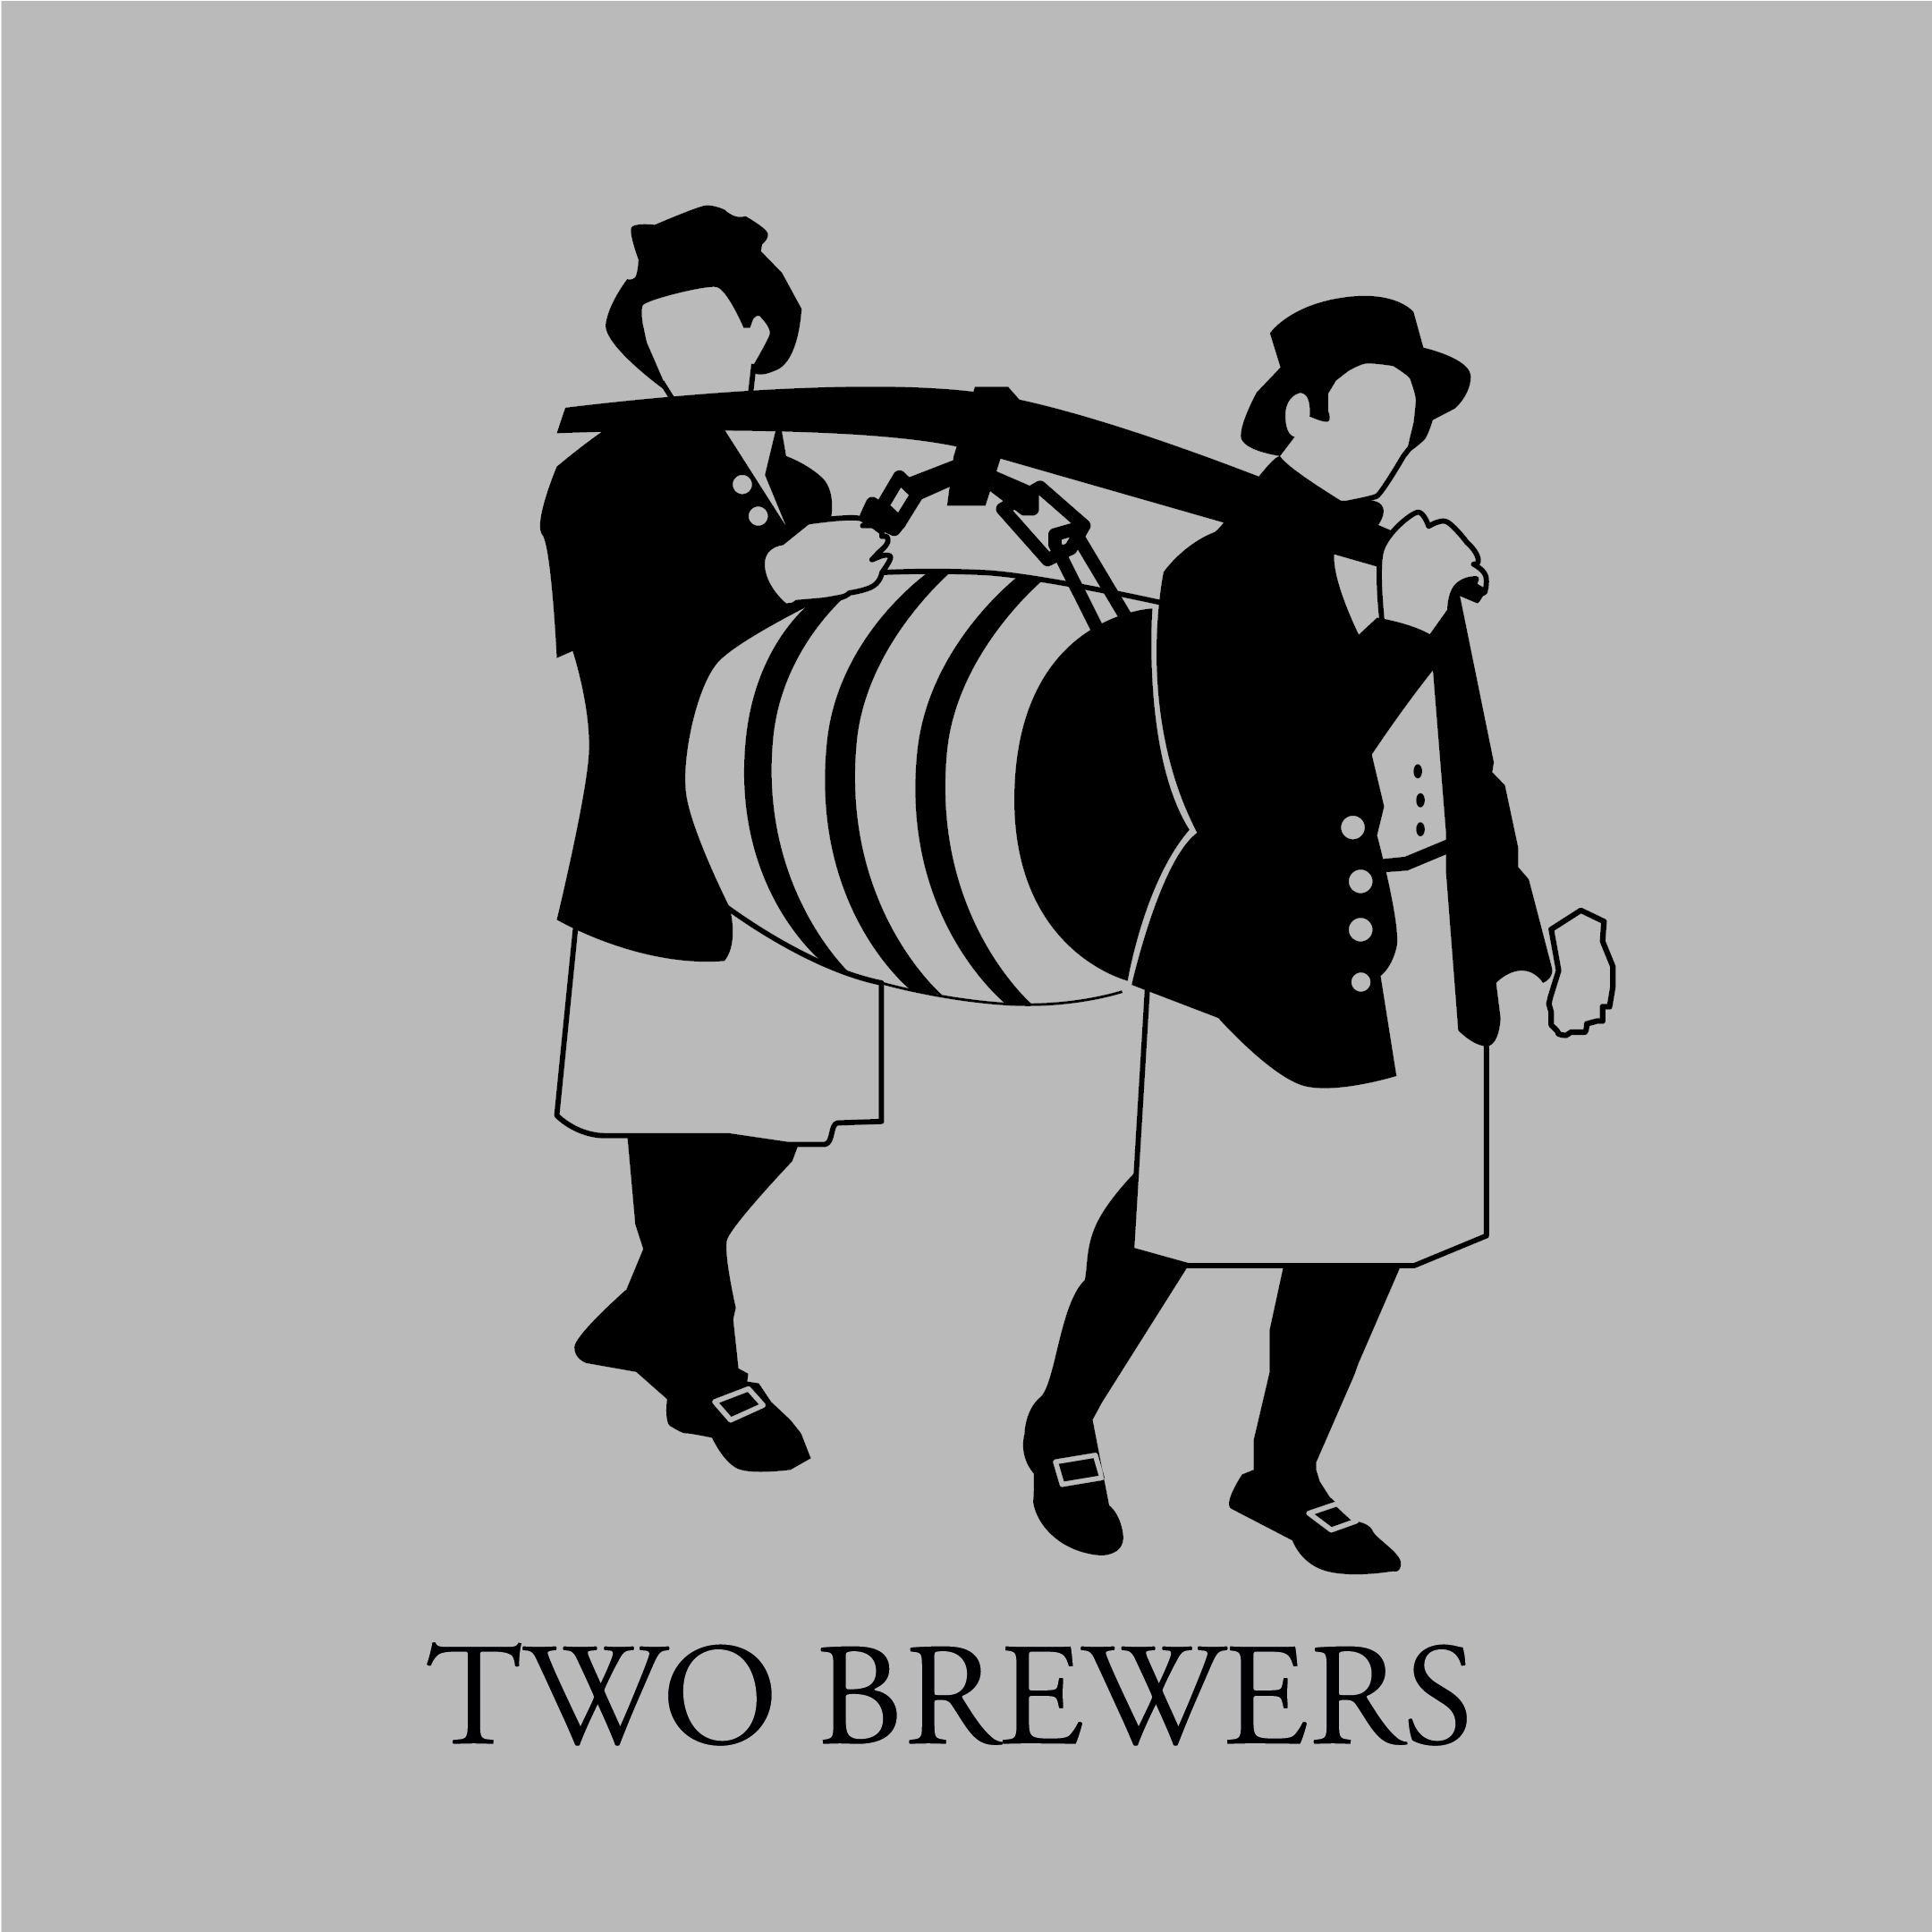 The Two Brewers